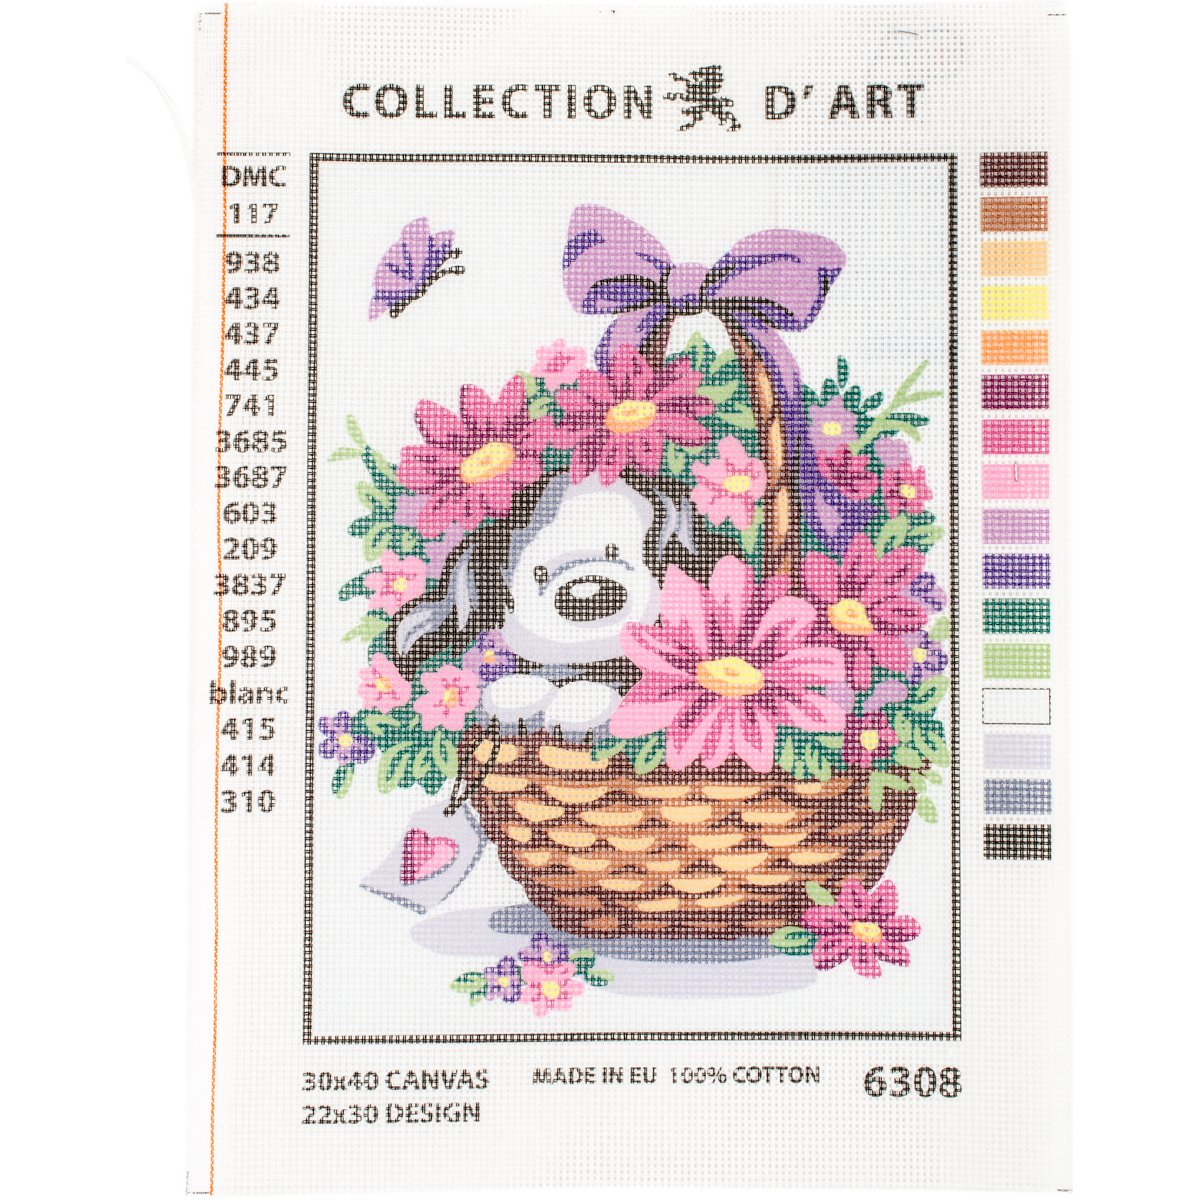 RTO' Puppy in A Basket of Flowers D'Art Needlepoint Printed Tapestry Canvas, 30 x 40cm 6308